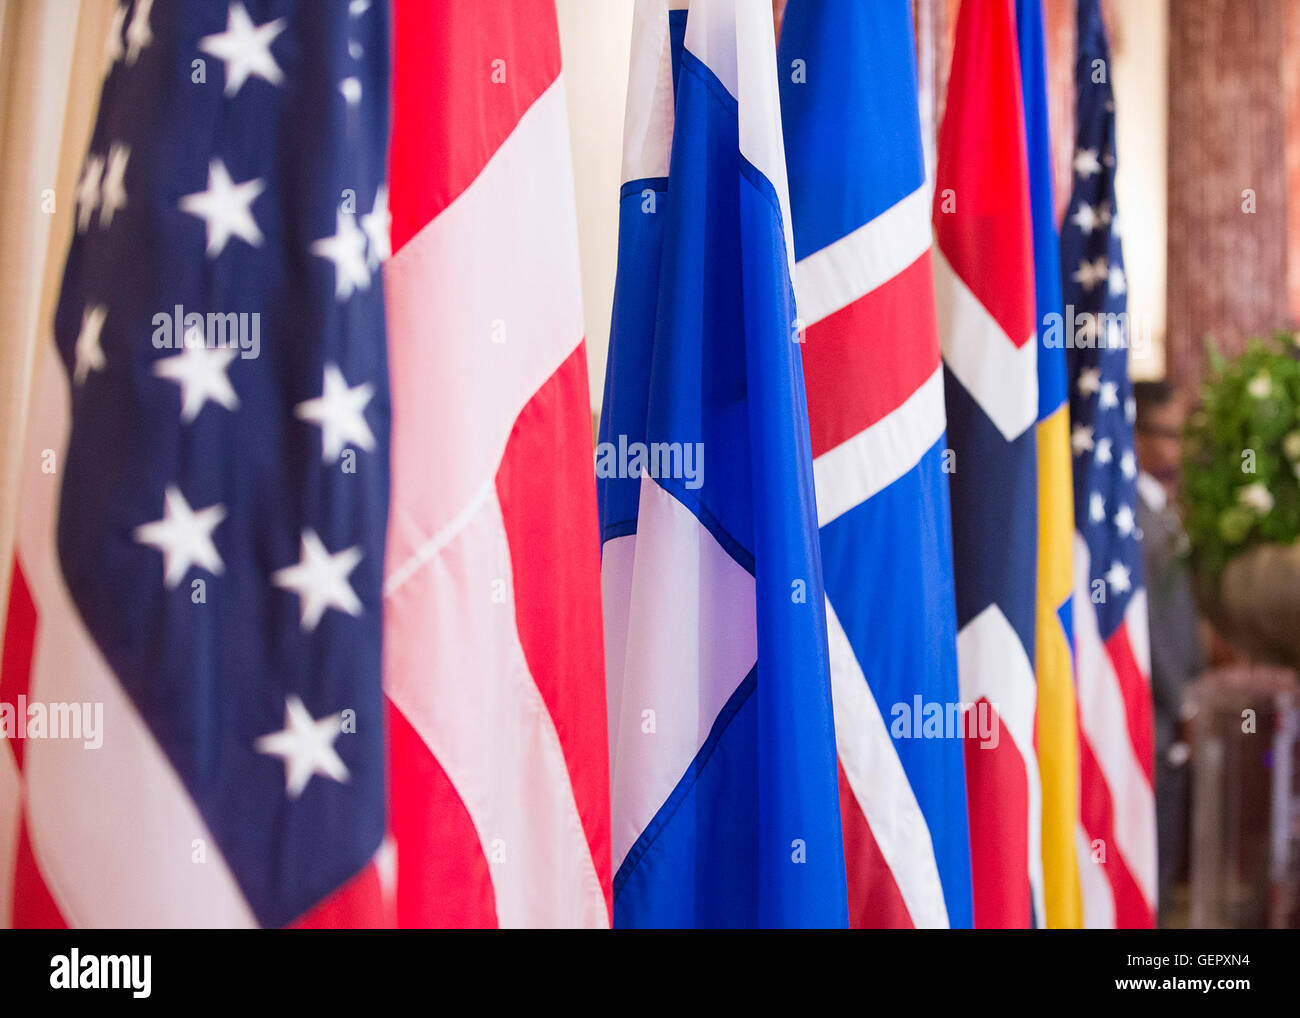 The Flags of Finland, Norway, Sweden, Denmark, and Iceland Are on Display at a Working Luncheon Secretary Kerry - Stock Image